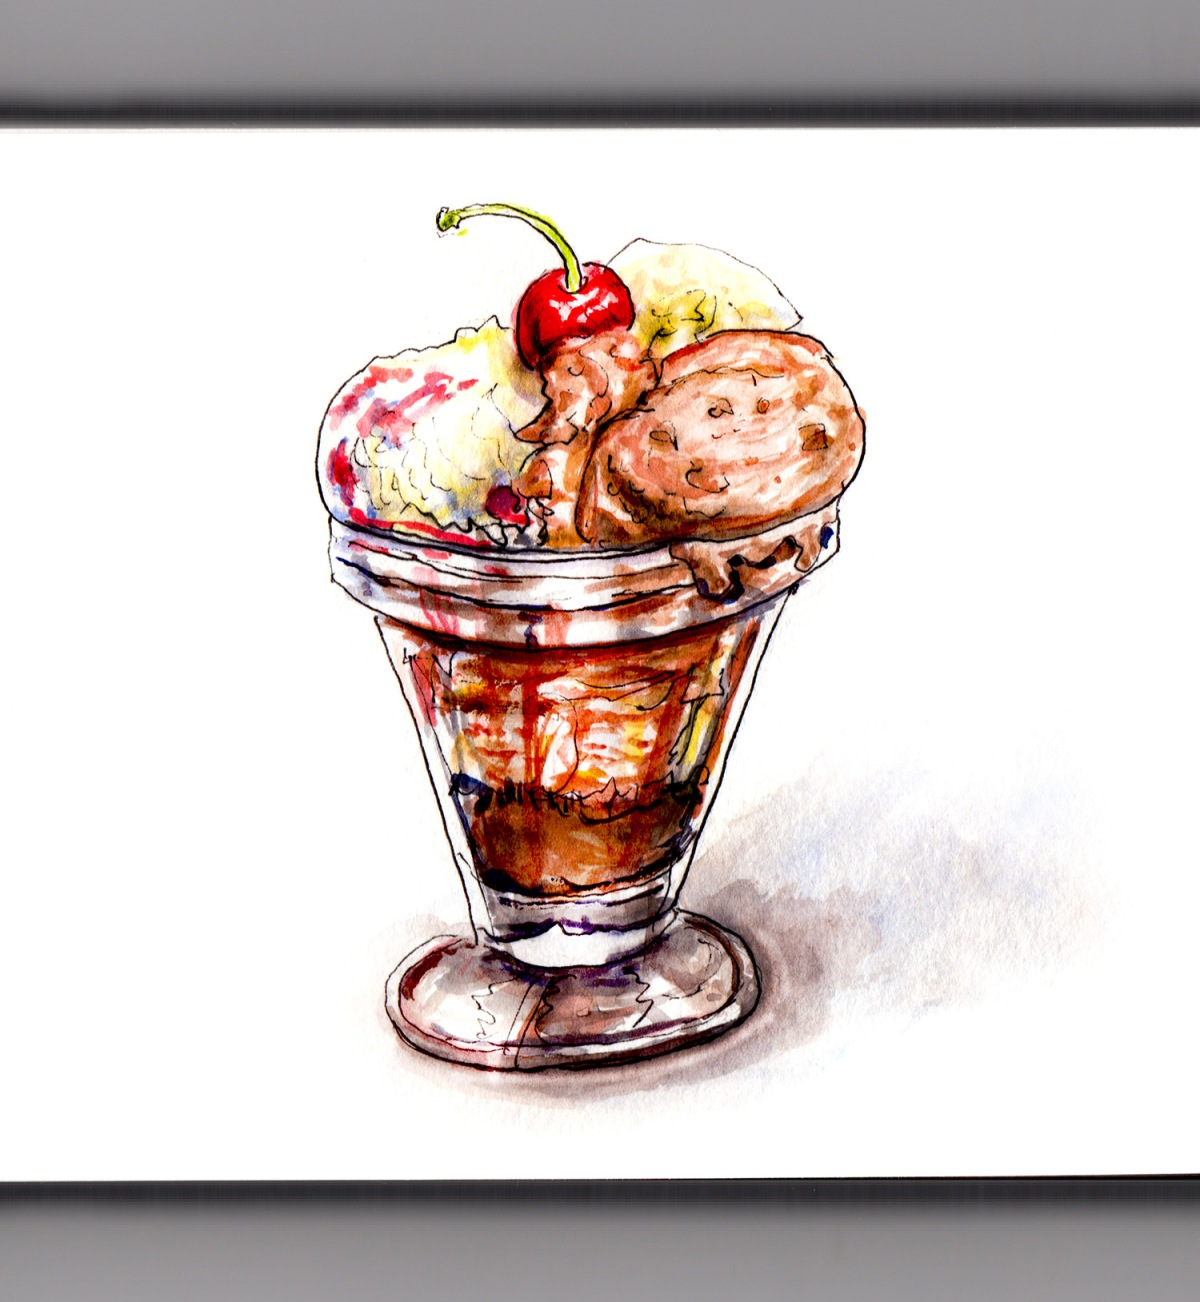 Day 30 - #WorldWatercolorGroup - Ice Cream Sundae Dessert With Cherry - #doodlewash